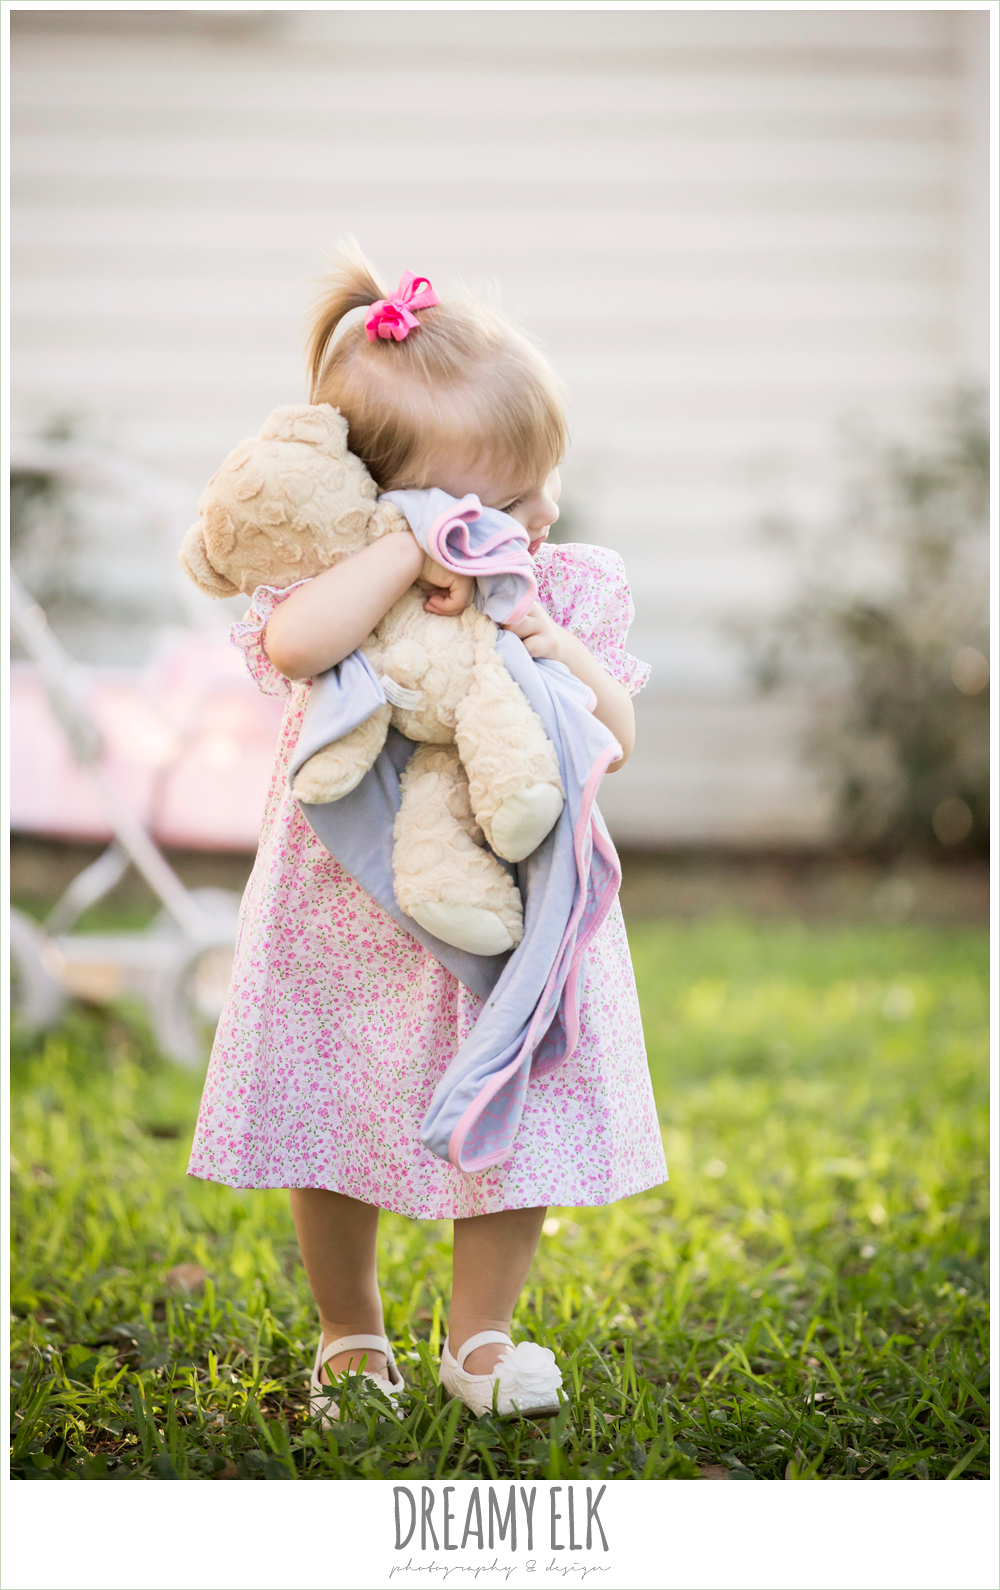 18 month old photo, photo of girl toddler outside with pottery barn doll pram and stuffed teddy bear